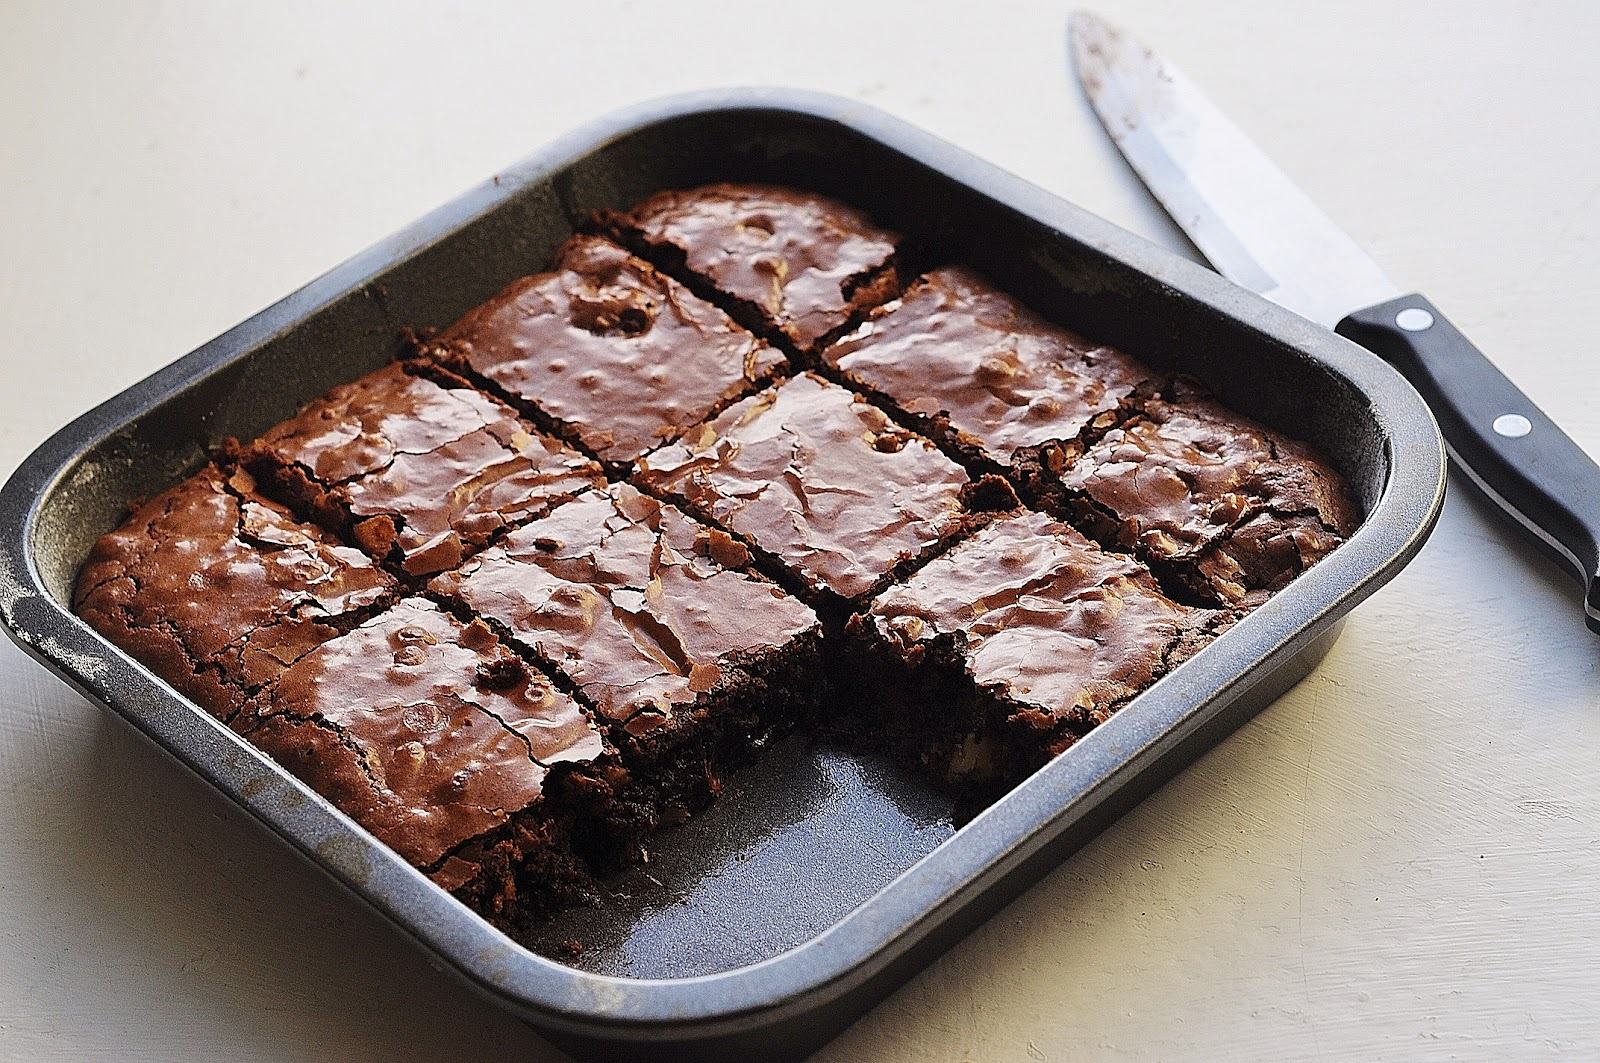 Suzanne's Best Brownies Recipe - (5/5)